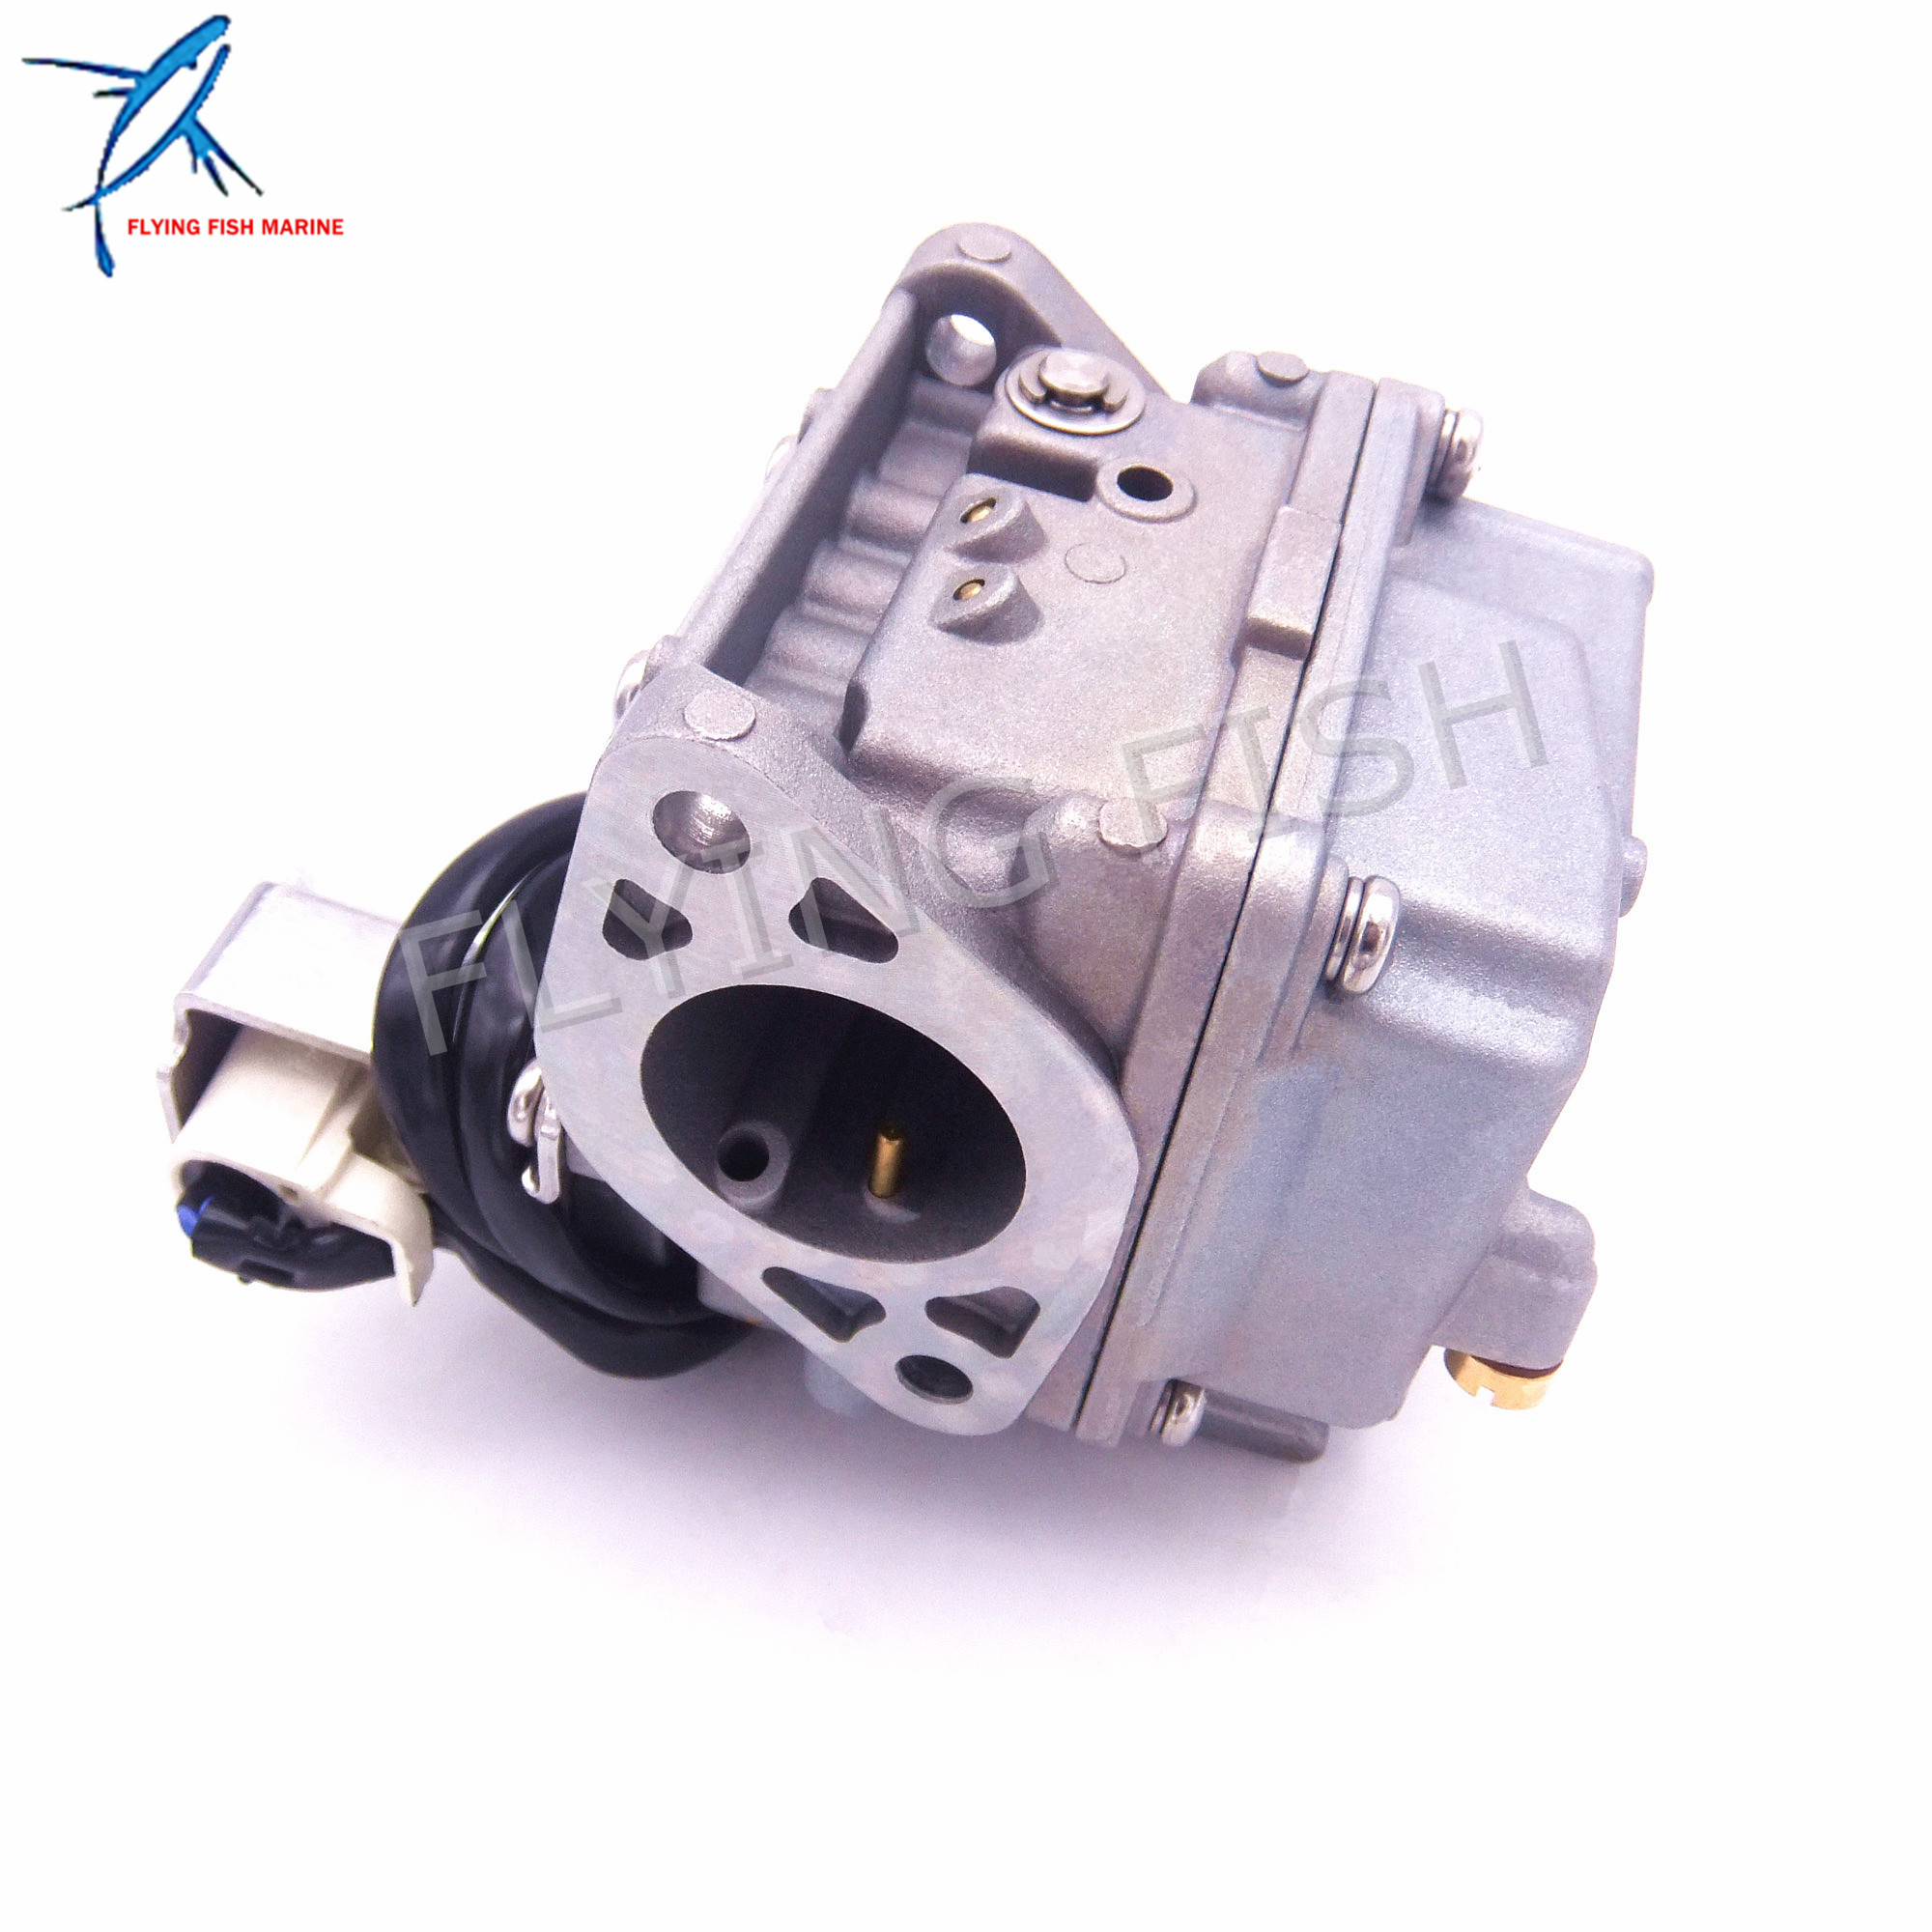 Image 4 - Outboard Engine Carburetor Assy 6AH 14301 00 6AH 14301 01 for Yamaha 4 stroke F20 Boat Motor Free Shipping-in Boat Engine from Automobiles & Motorcycles